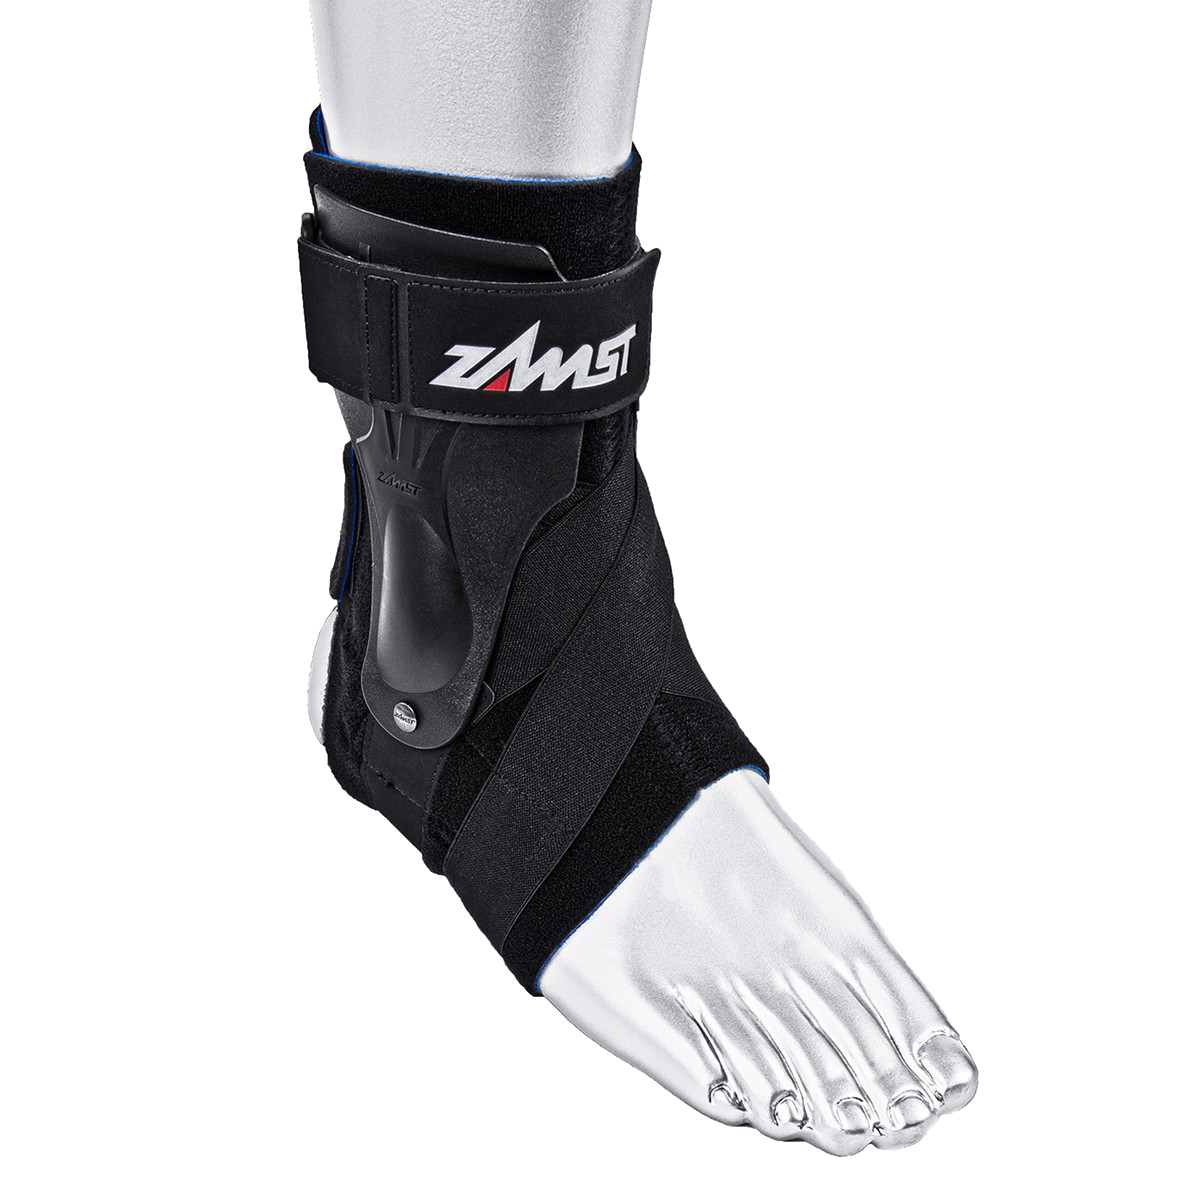 Zamst A2-DX Enkelbrace - Zwart - Links - XL